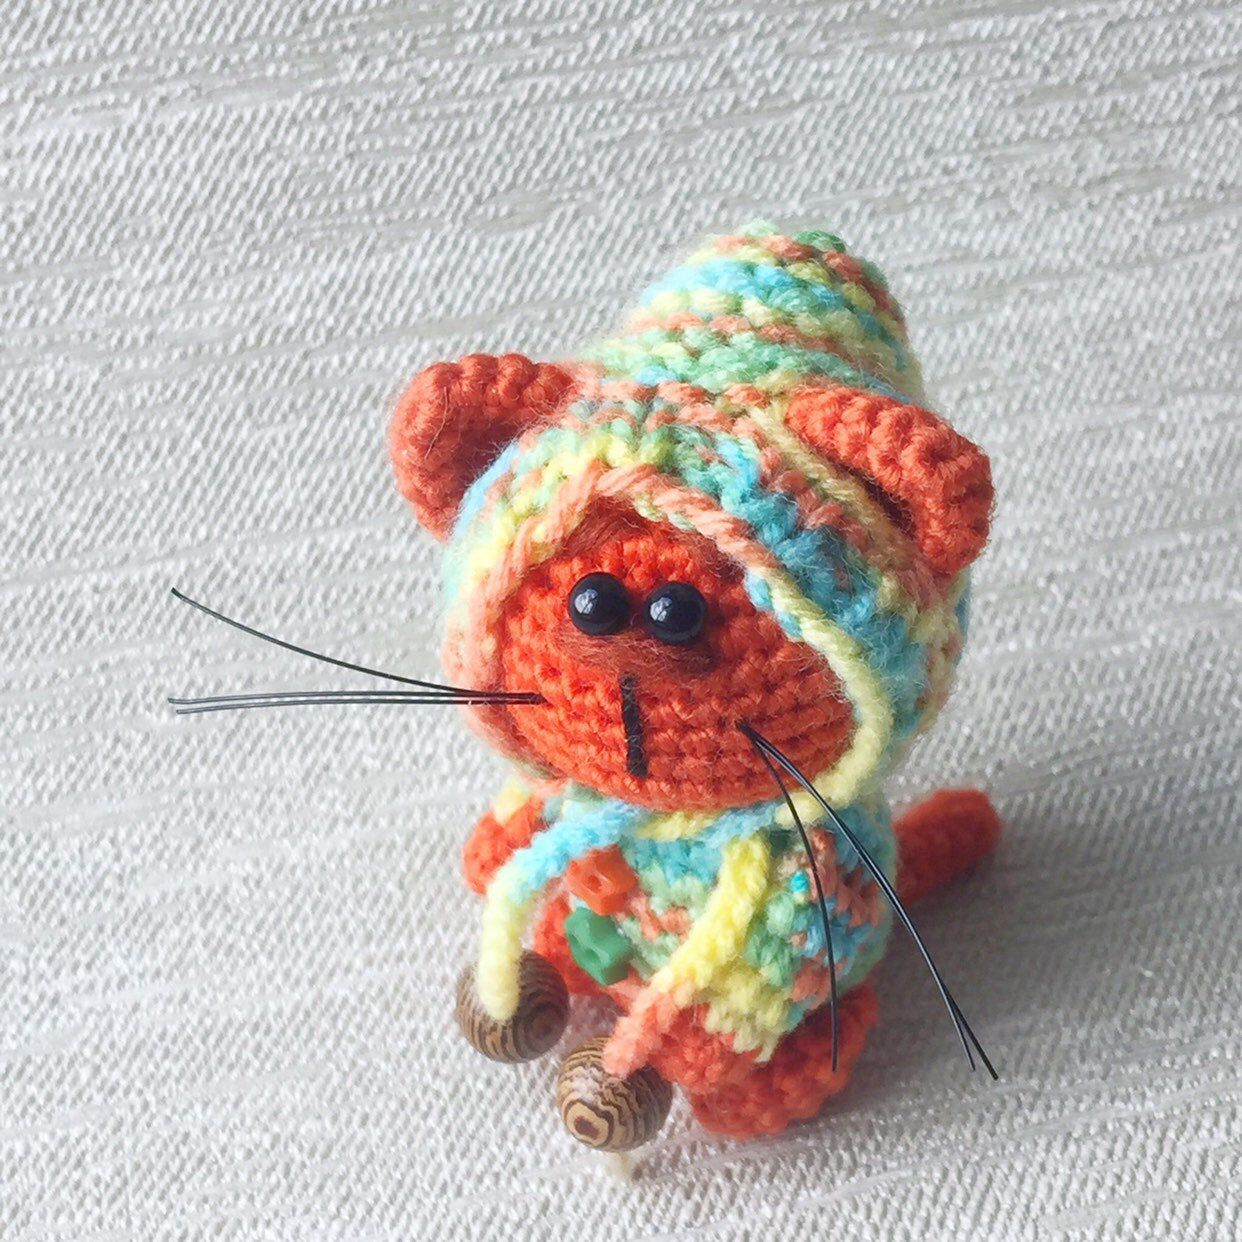 Small crocheted ginger kitten in rainbow hat Handmade decor Collectible toy Cute gift Memory softy cat Crochet mini toy Handmade cat #gingerkitten Excited to share this item from my #etsy shop: Small crocheted ginger kitten in rainbow hat Handmade decor Collectible toy Cute gift Memory softy cat Crochet mini toy Handmade cat #toys #birthday #red #thanksgiving #rainbow #roomsinteriordecor #cutekittyinhat #miniaturetoycat #crochetedredcat #gingerkitten